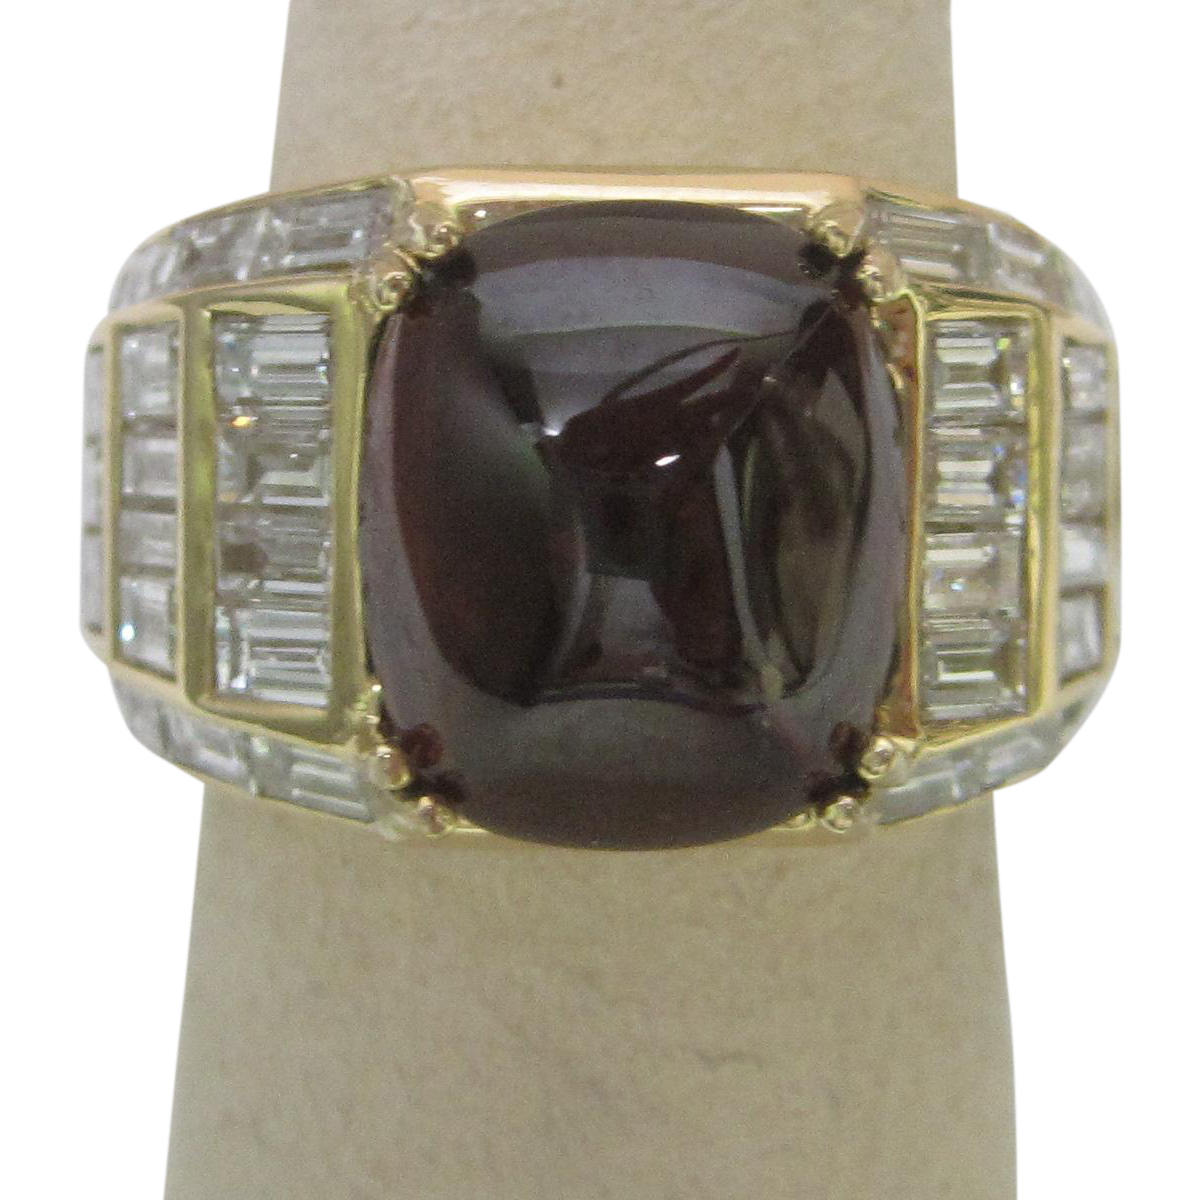 3 ct. Garnet and Diamond  Engagement ring  in 18K Yellow Gold  Stunning